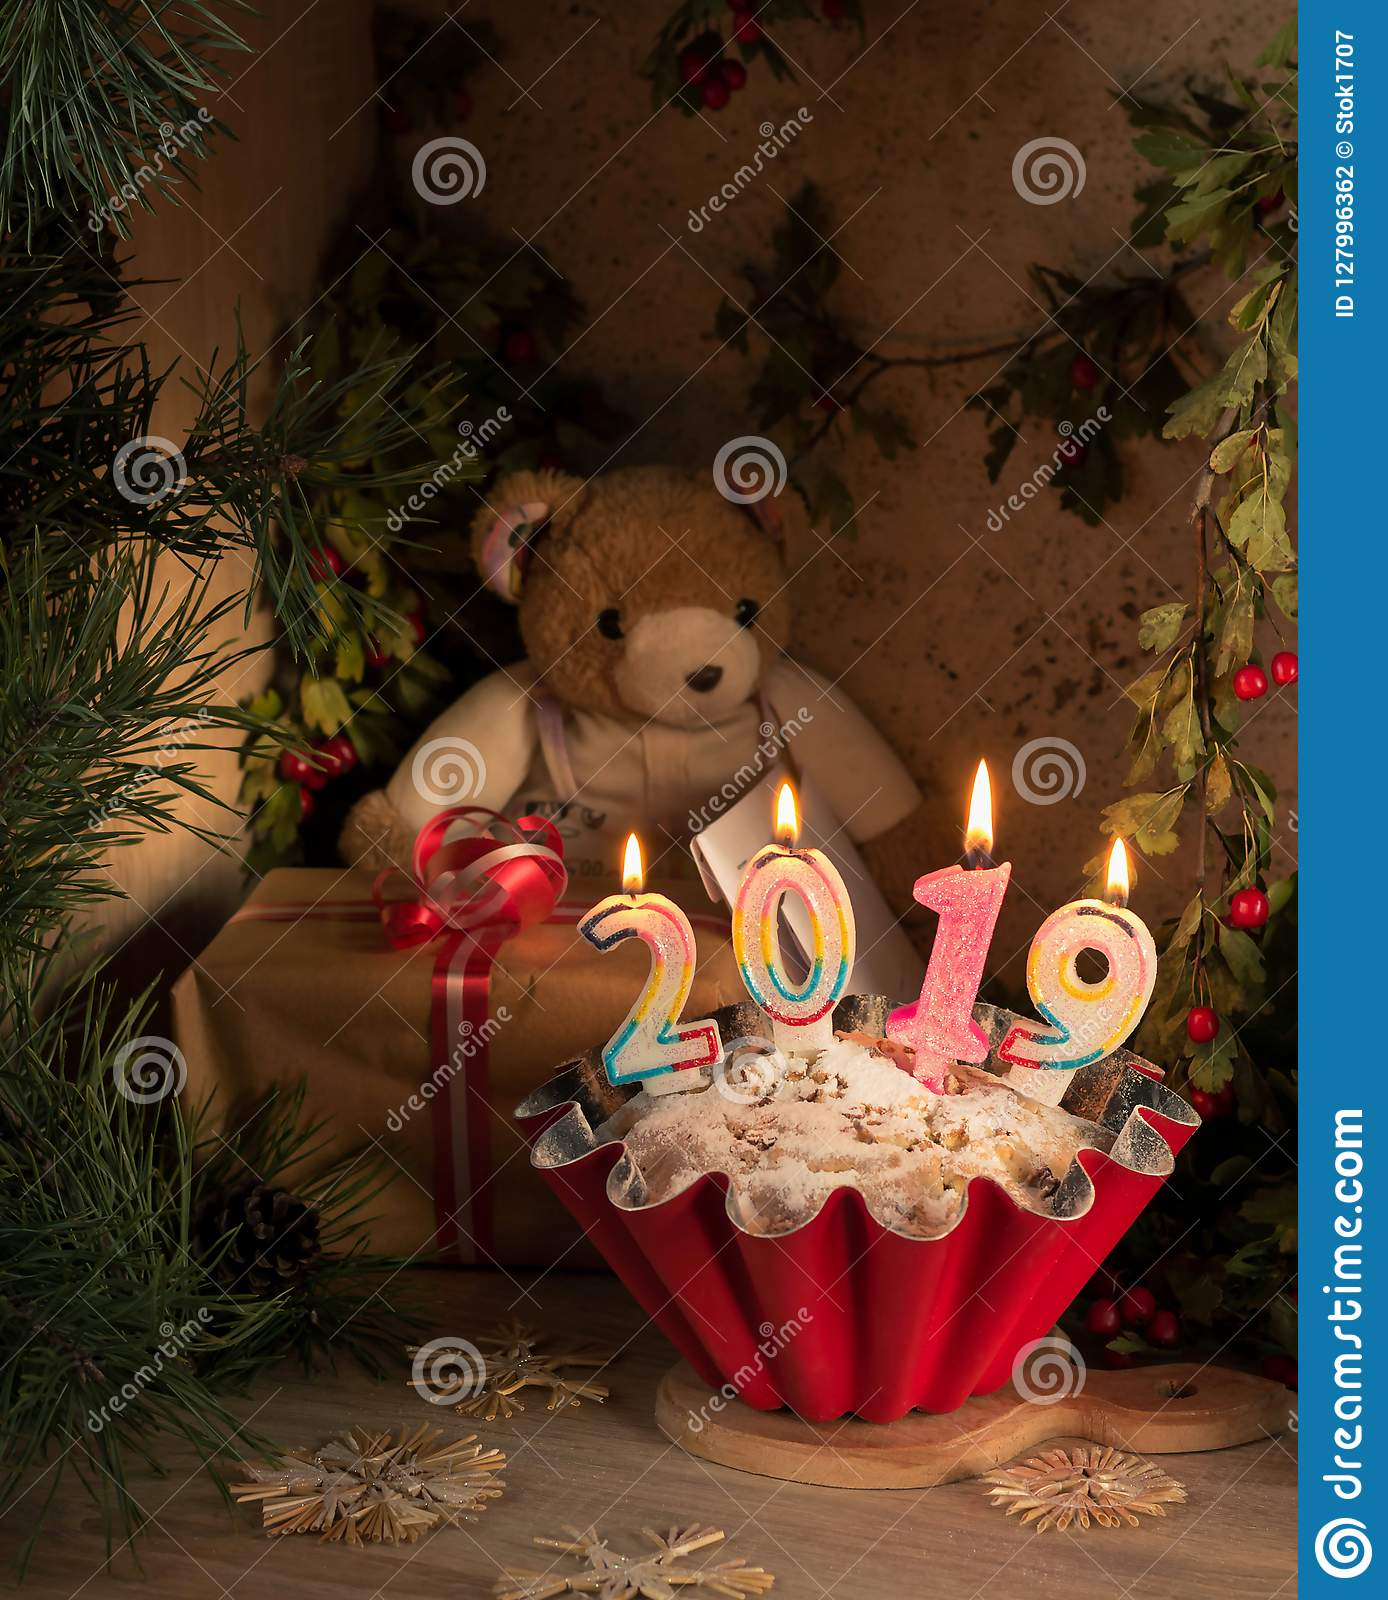 2019 Christmas Bears New Year Card 2019. Christmas Card. Bear With Letters Sits In